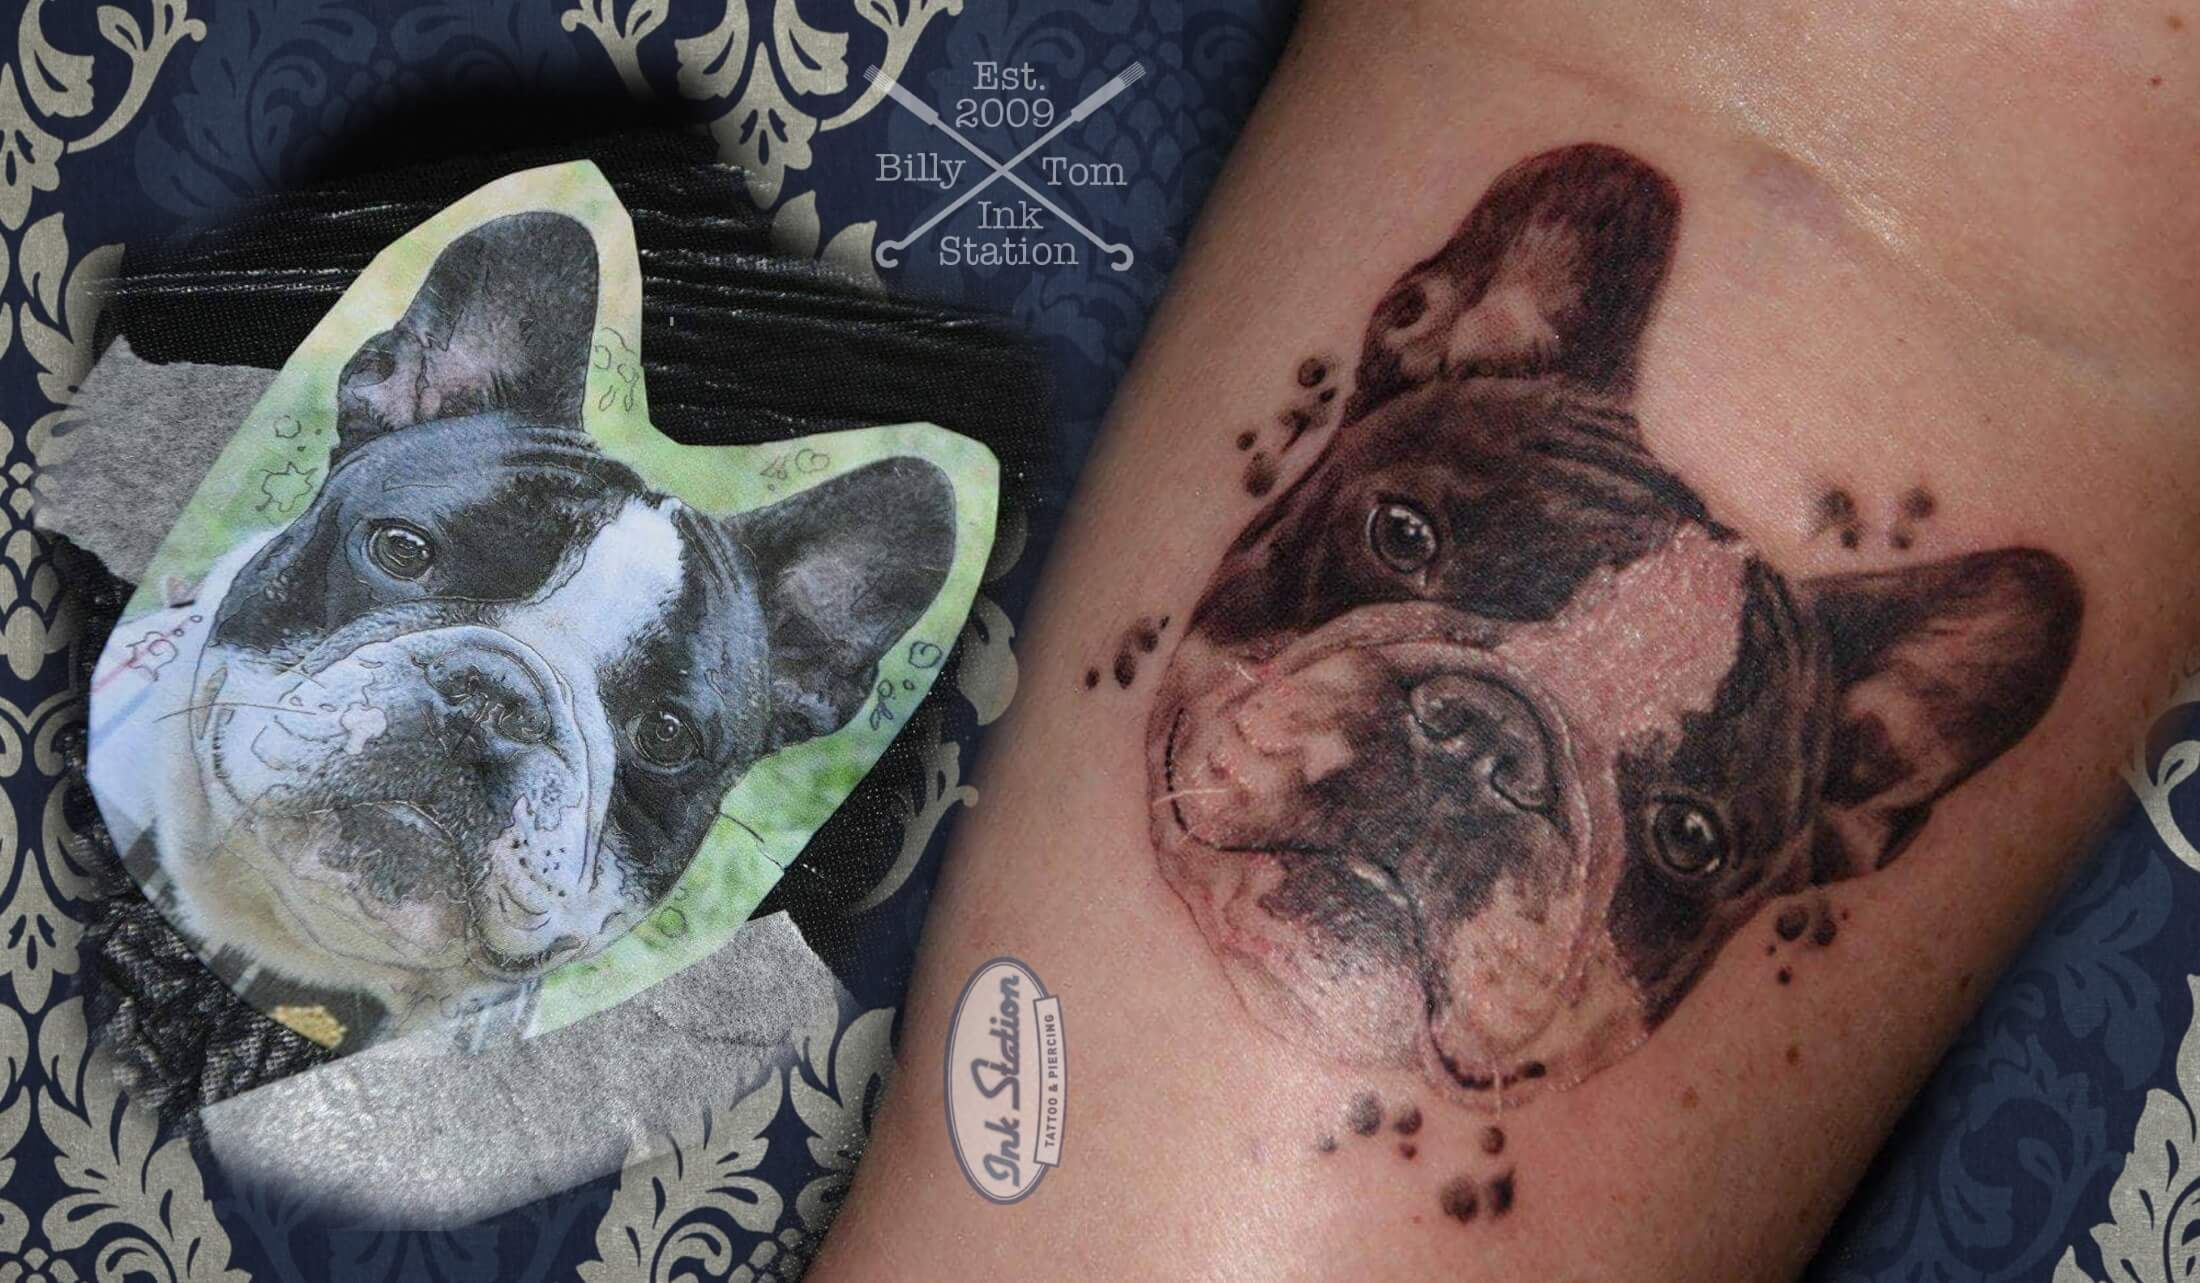 Fanzosen Bully Tattoo From Billy From The Ink Station Www Ink Station Net Www Tattooentfernung Stuttgart Com Www C Tattoo Stuttgart Tiertattoos Tattoo Magazin